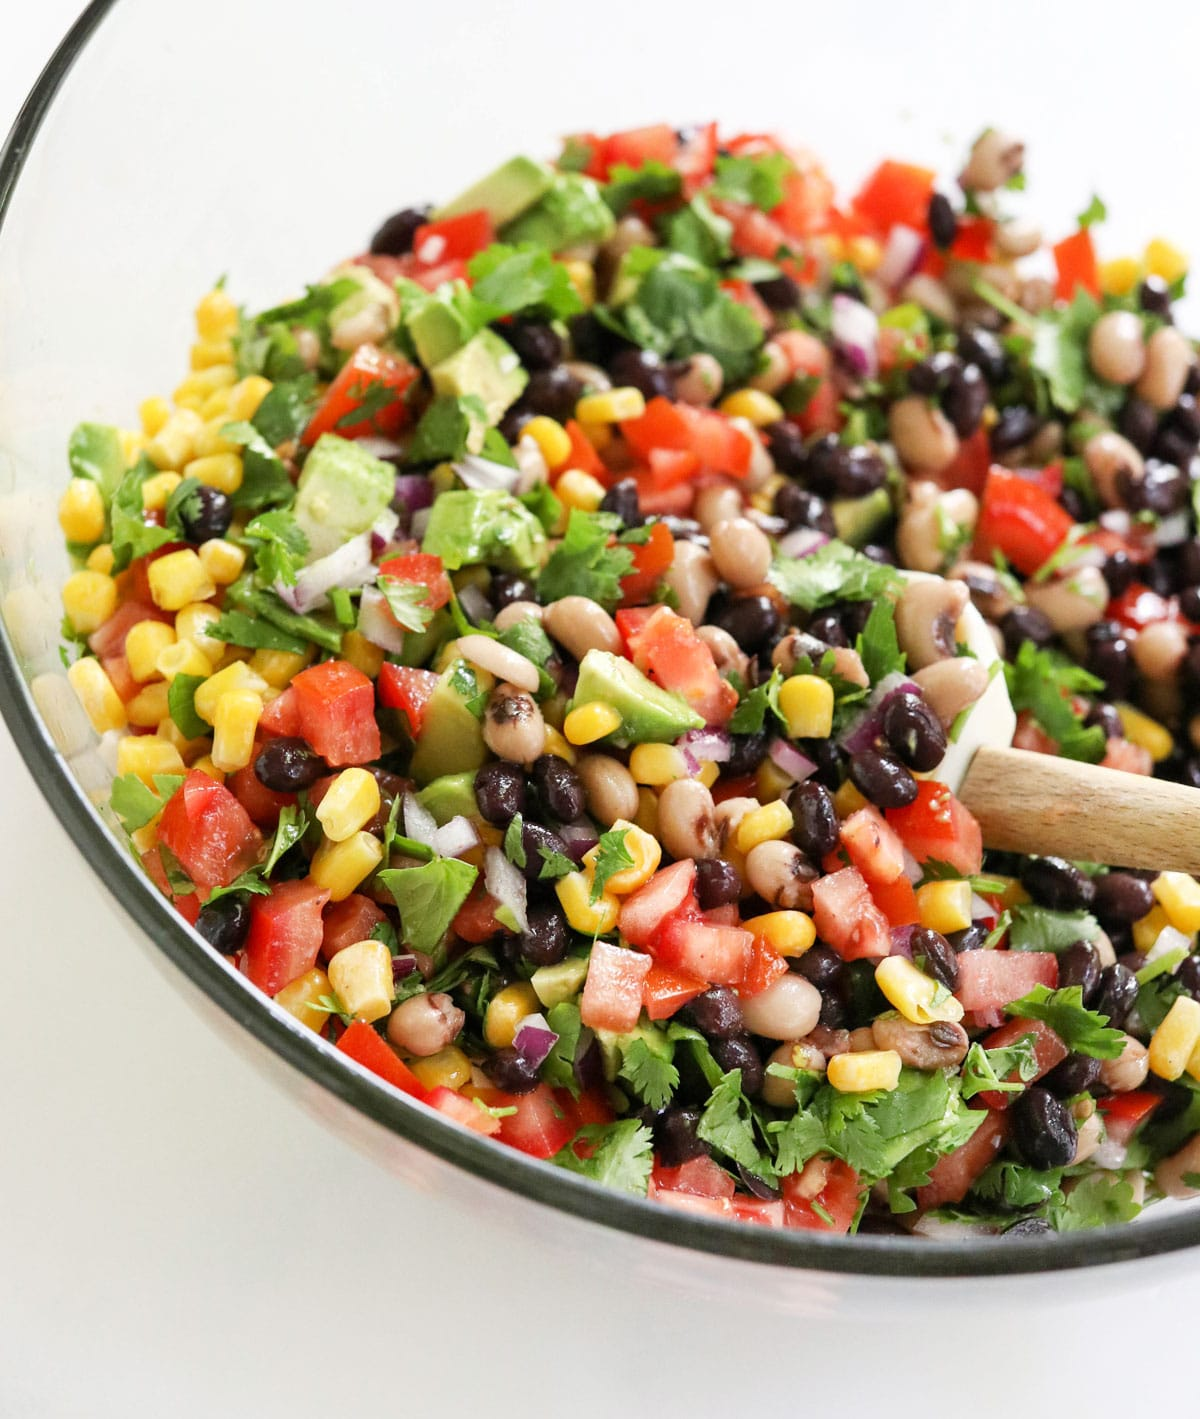 chopped veggies and beans in glass bowl